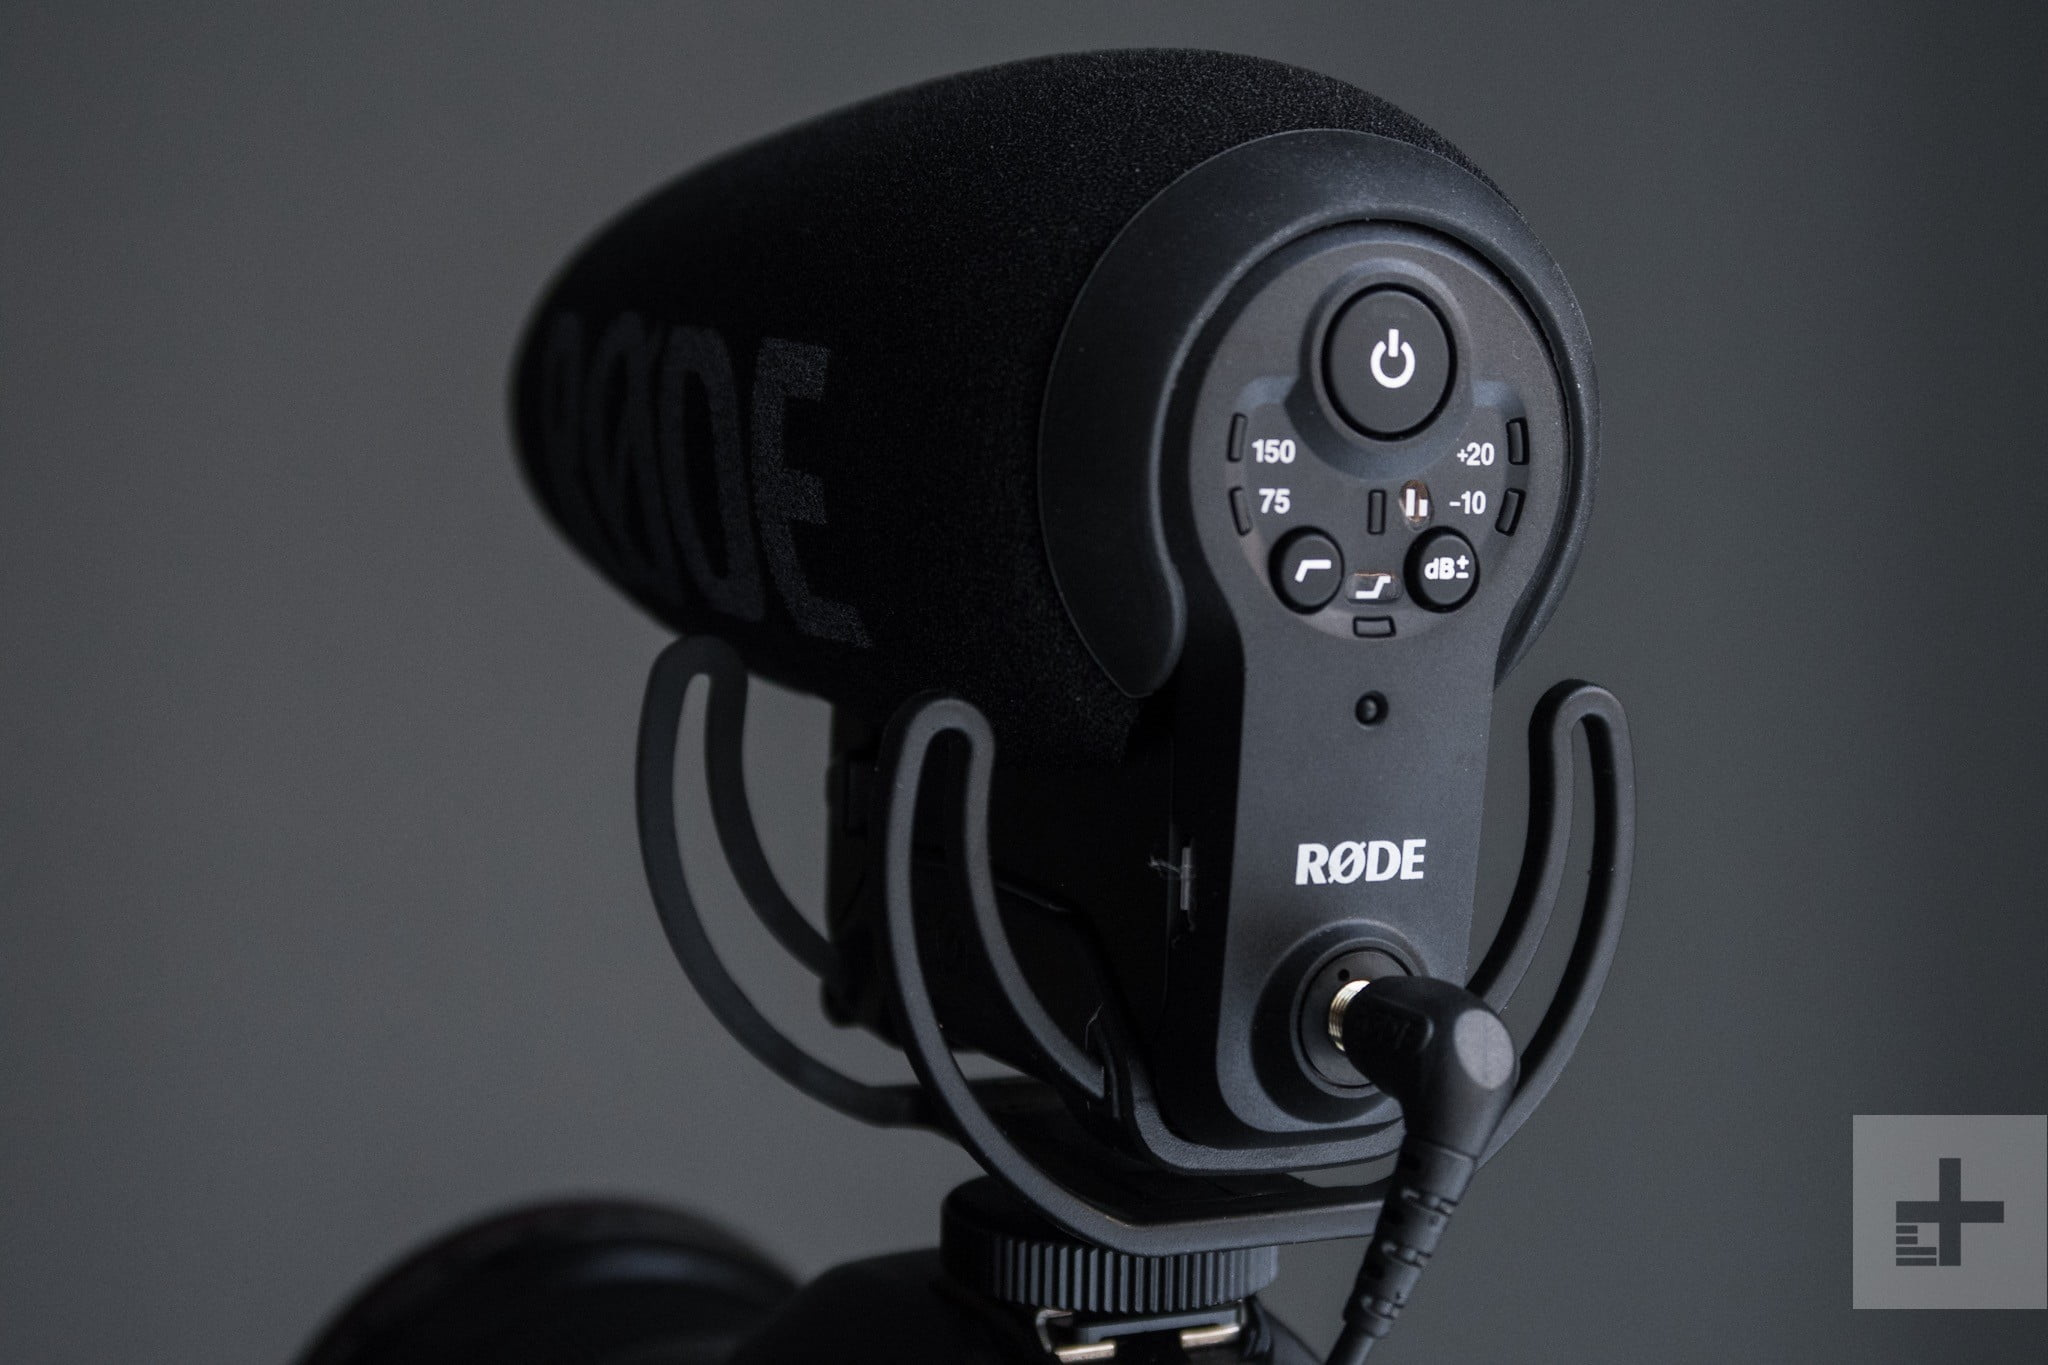 Cameras & Photo Audio For Video Steady Rode Shotgun Video Mic Selected Material